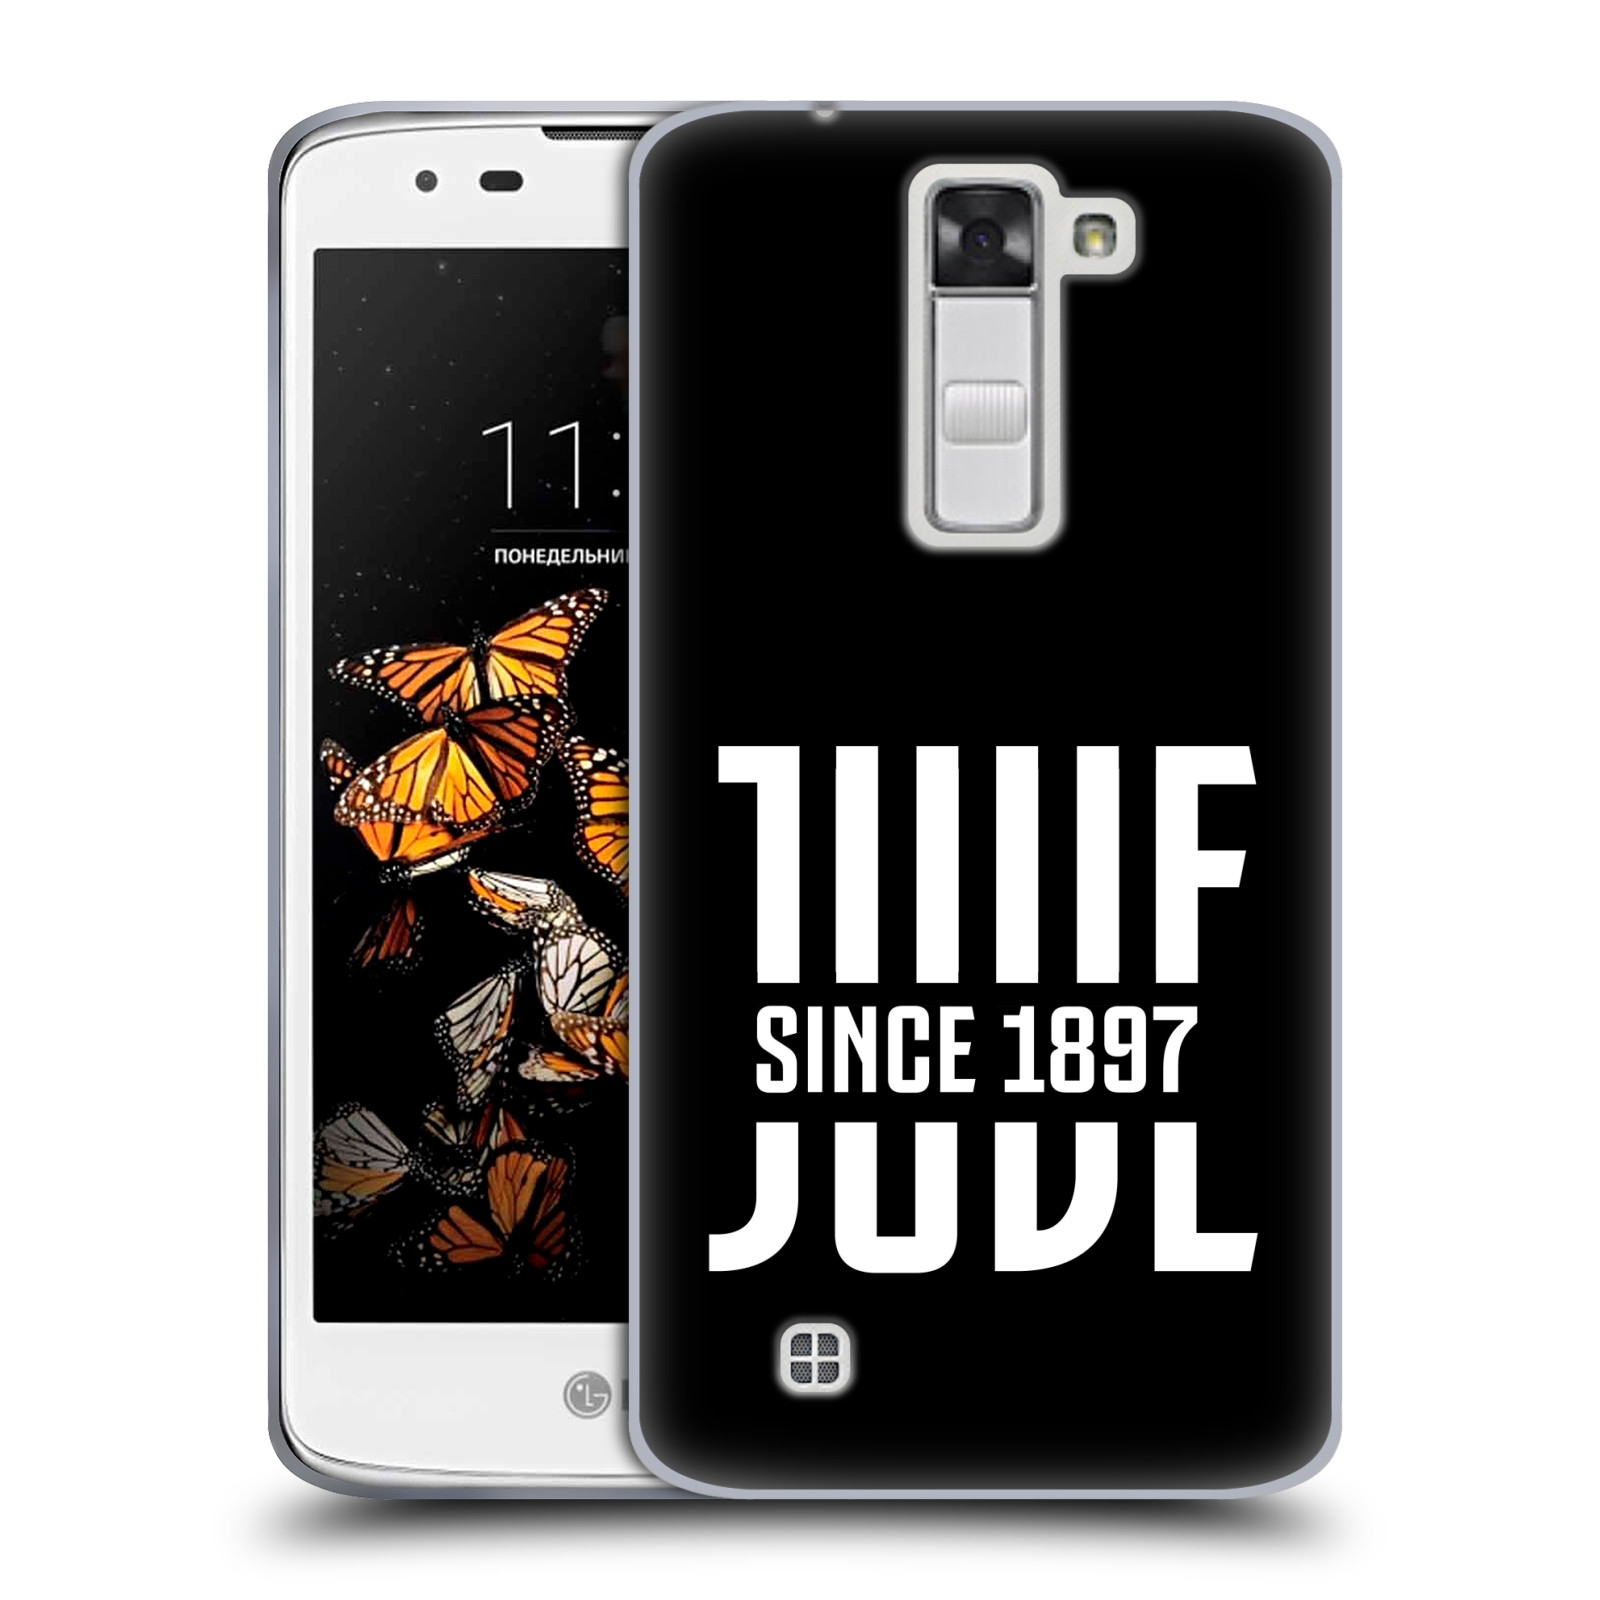 OFFICIAL-JUVENTUS-FOOTBALL-CLUB-HERITAGE-SOFT-GEL-CASE-FOR-LG-PHONES-2